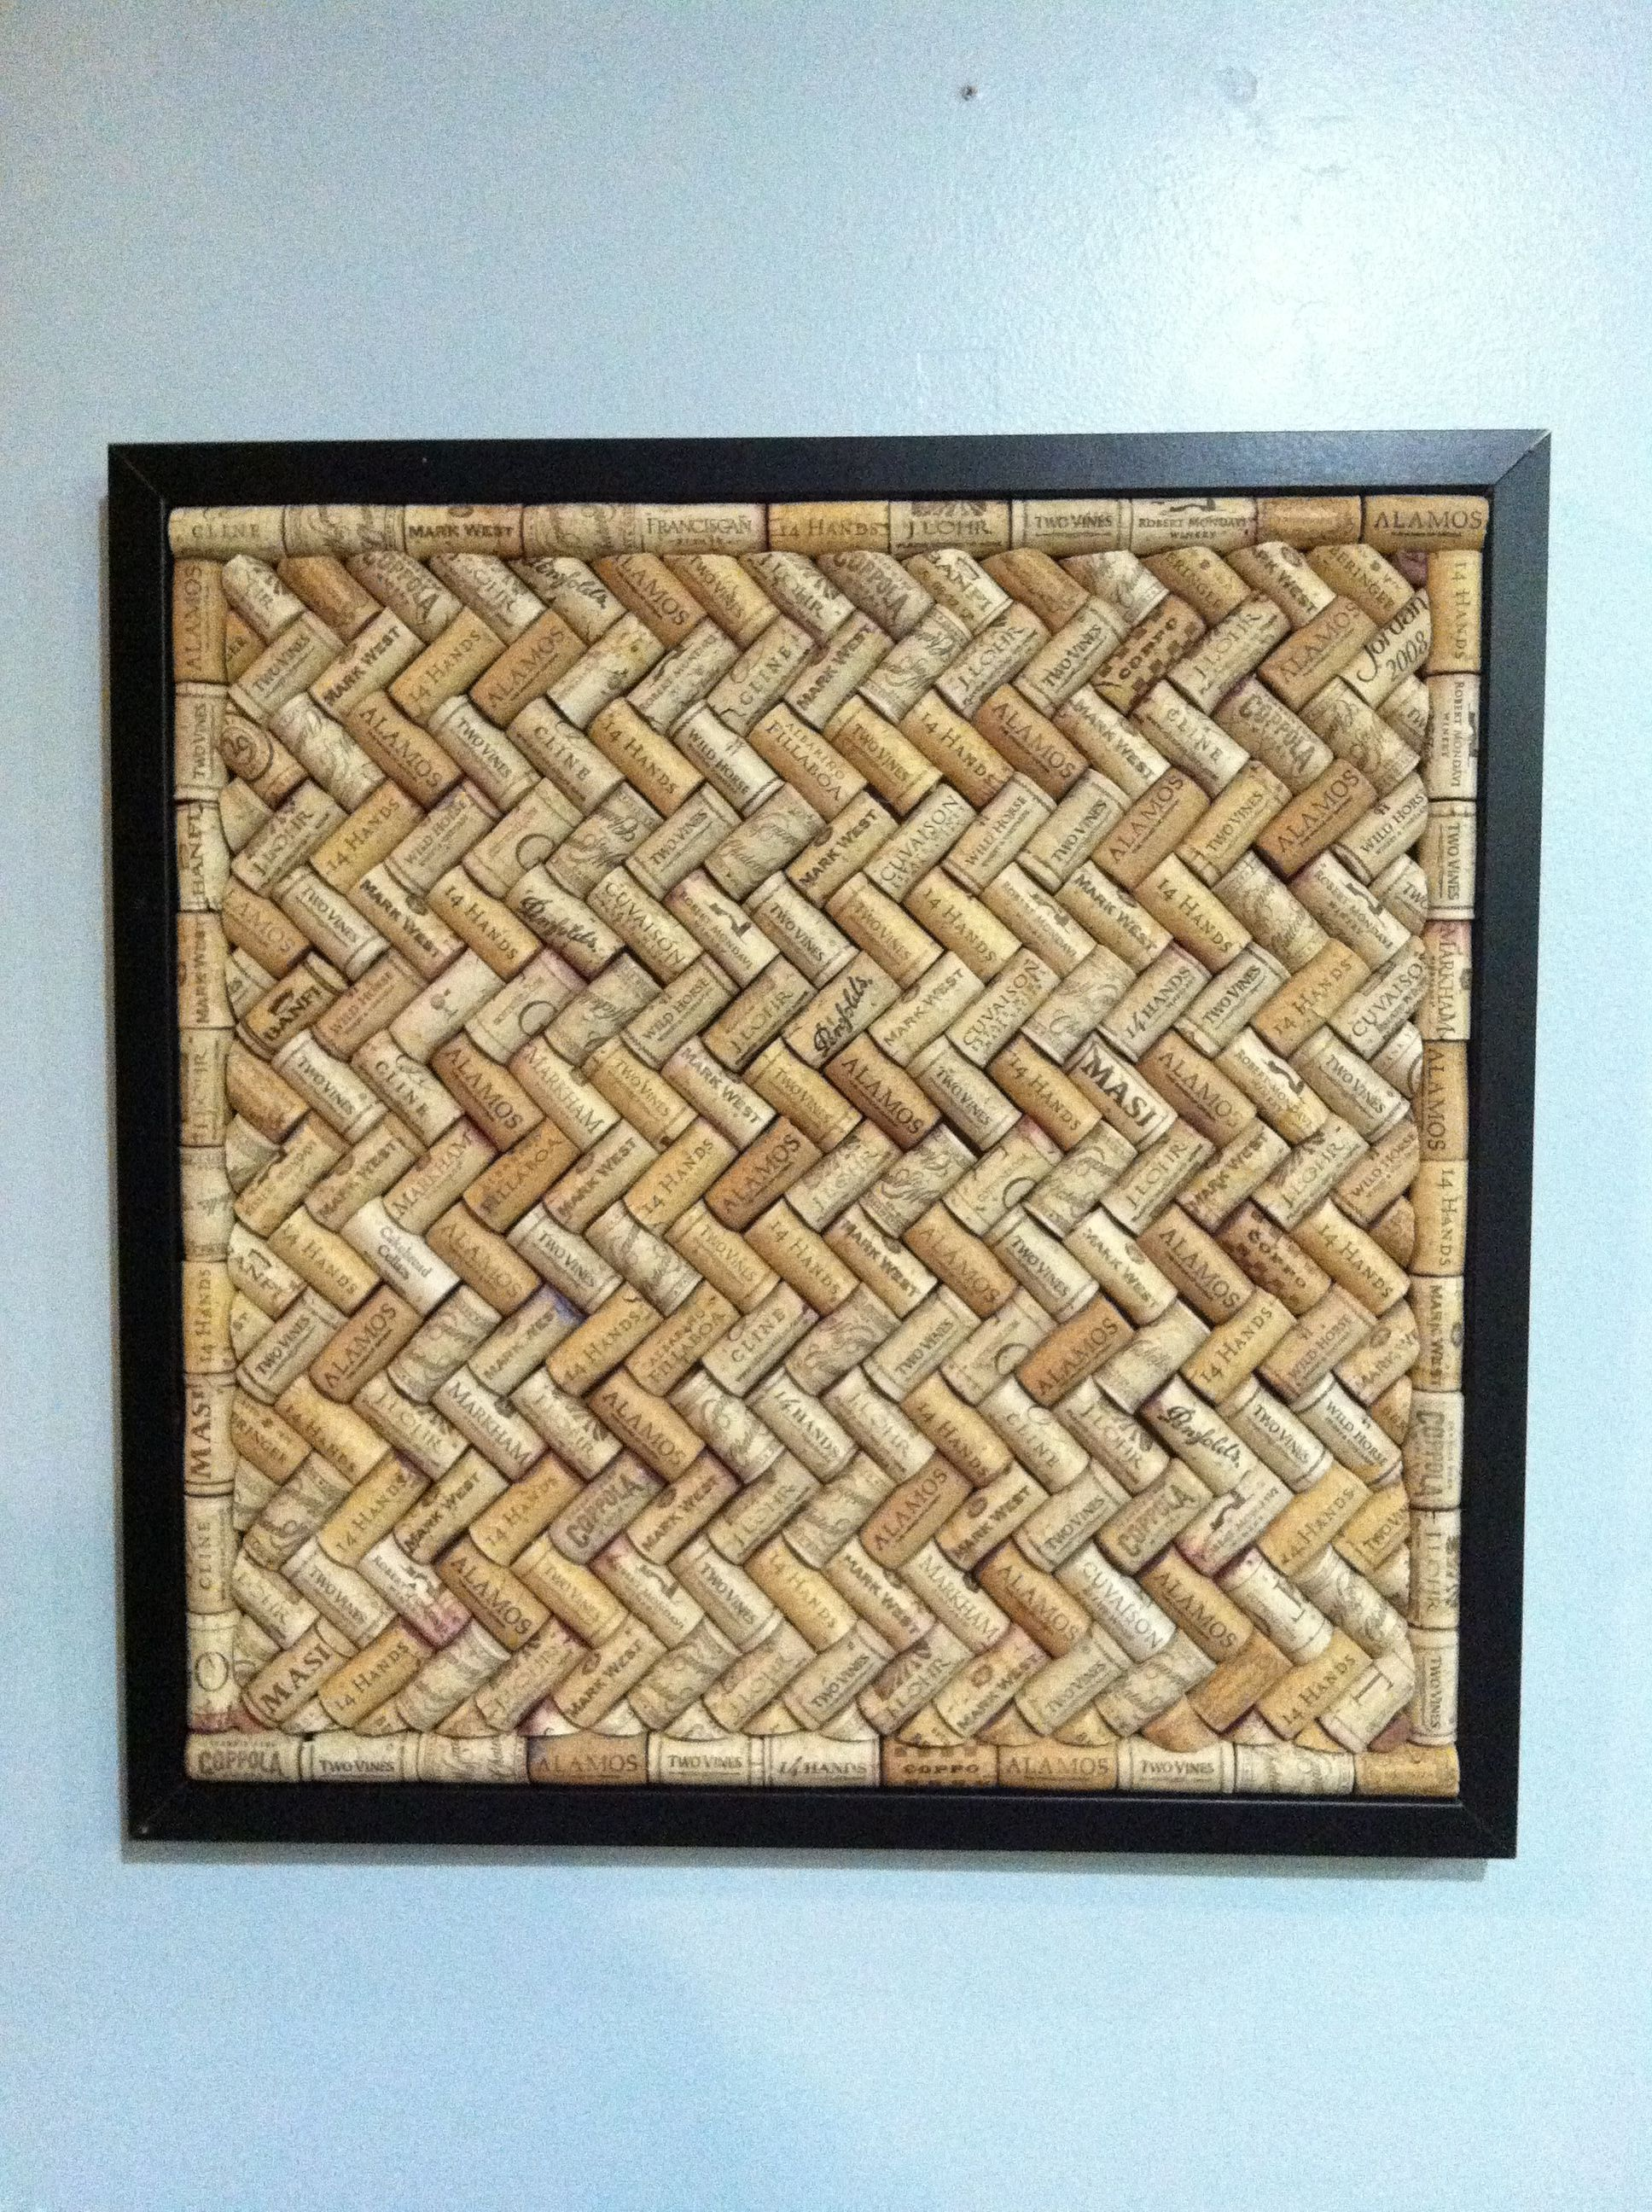 Uncategorized Cork Board No Frame wine cork board make one for the office with no frame put something behind